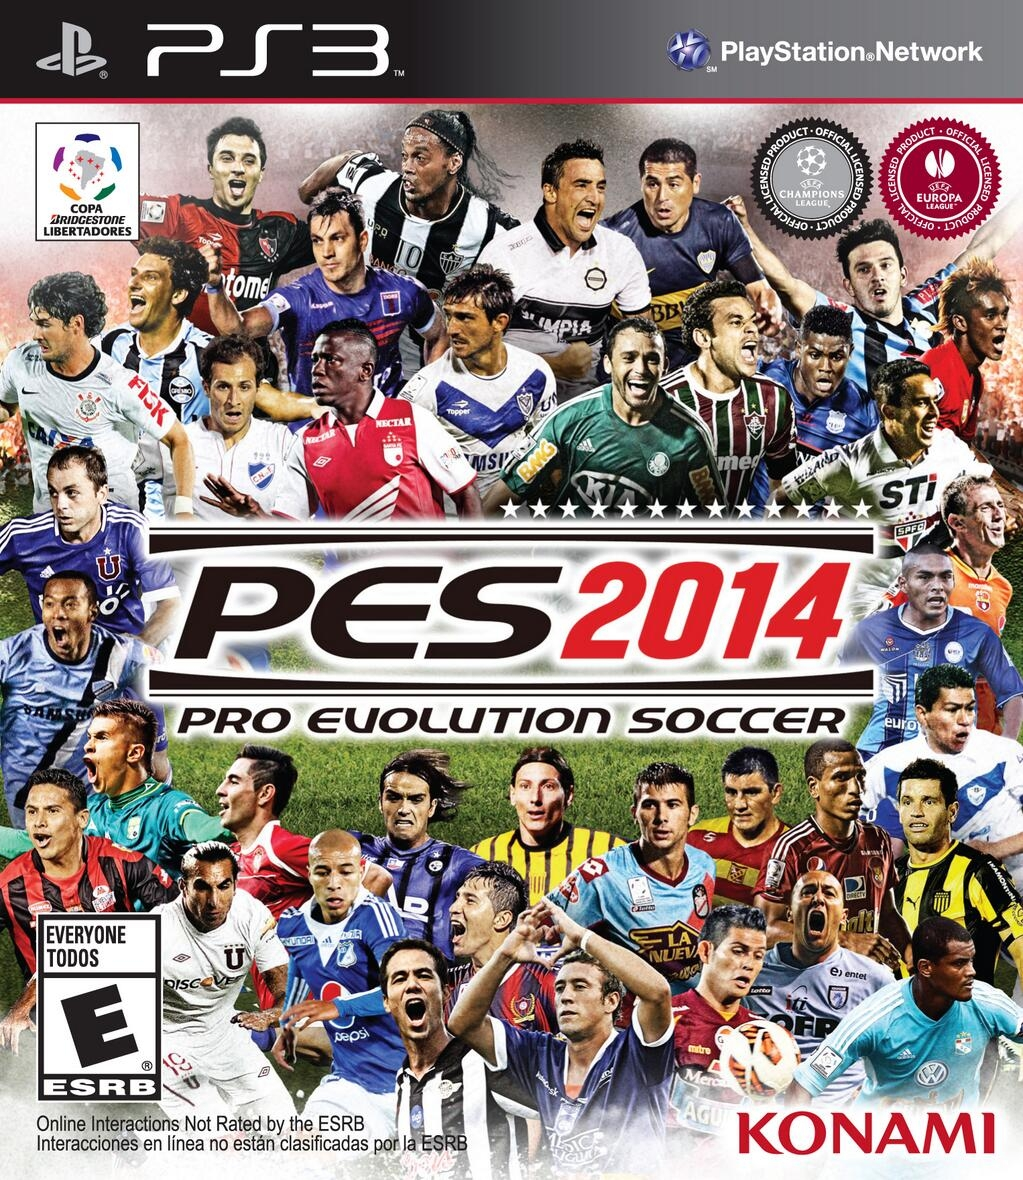 PES Pro-Evolution Soccer 2014 for PS3 em Portugu�s US